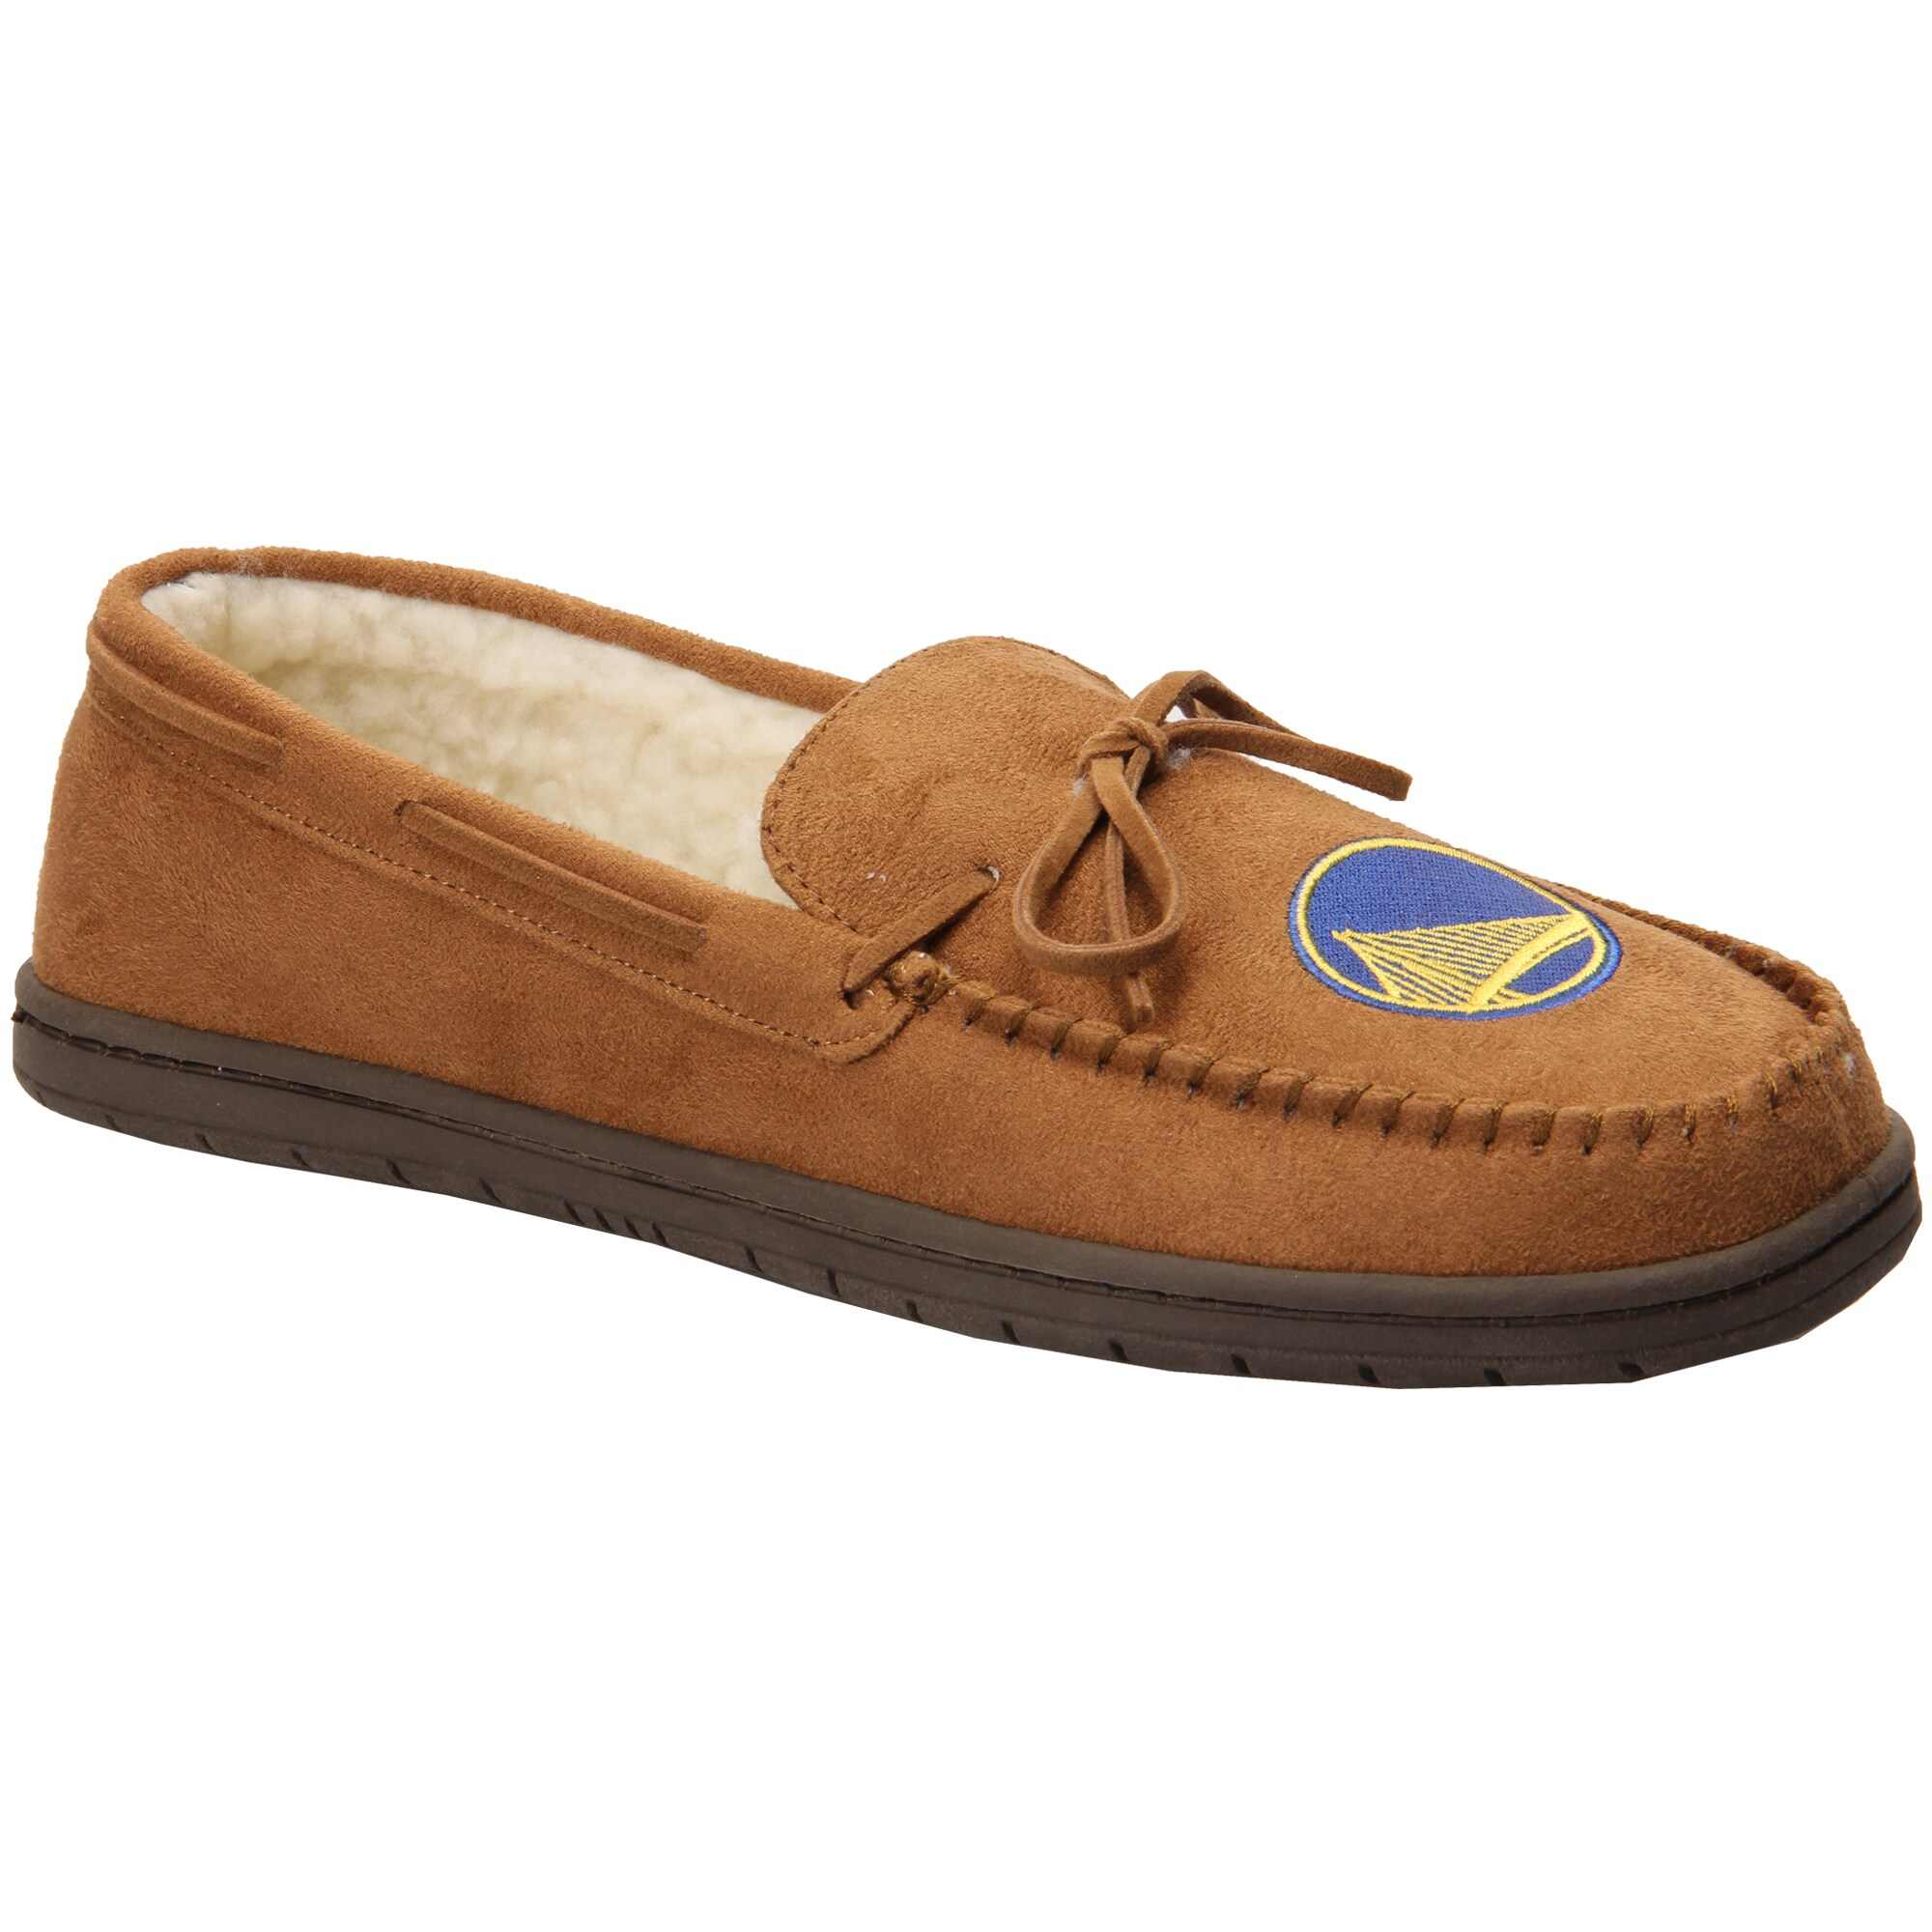 Golden State Warriors Moccasin Slippers